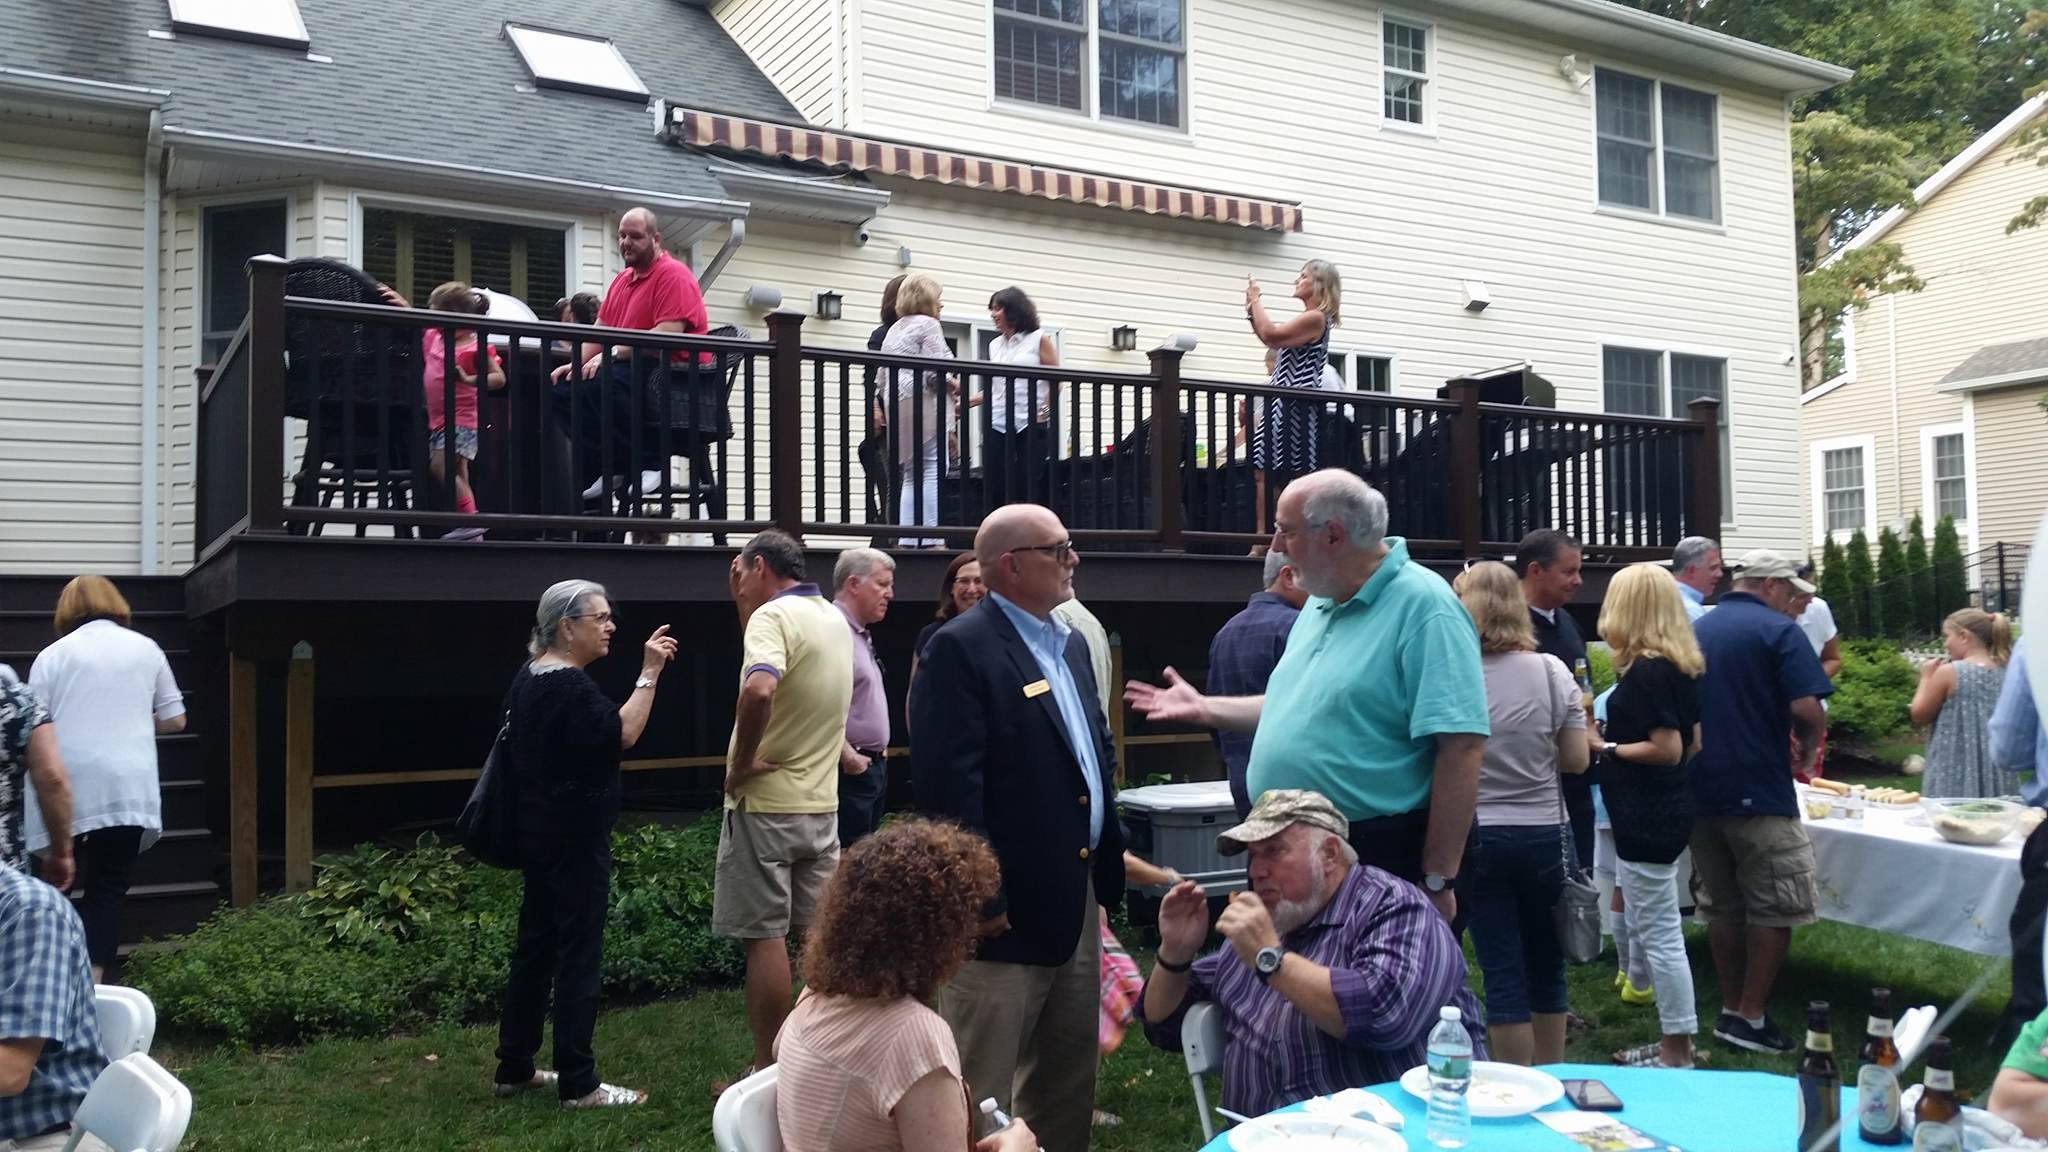 Great food and fun for all of our friends who attended this even to Elect Rudman & Levy!